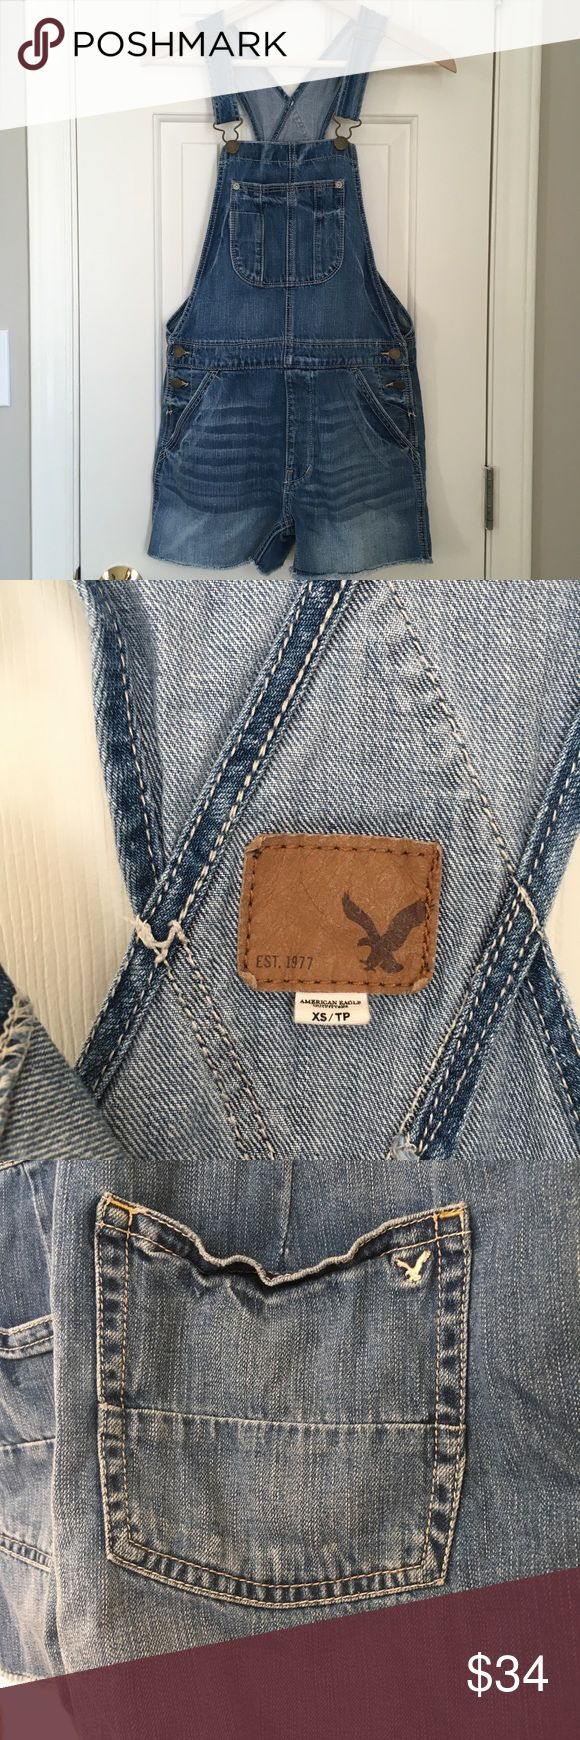 American Eagle Outfitters Denim Overall Shorts American Eagle Outfitters Short Overalls. Factory Distressed denim In excellent preloved condition! Size XS  *Bundle with other items to save more! American Eagle Outfitters Jeans Overalls